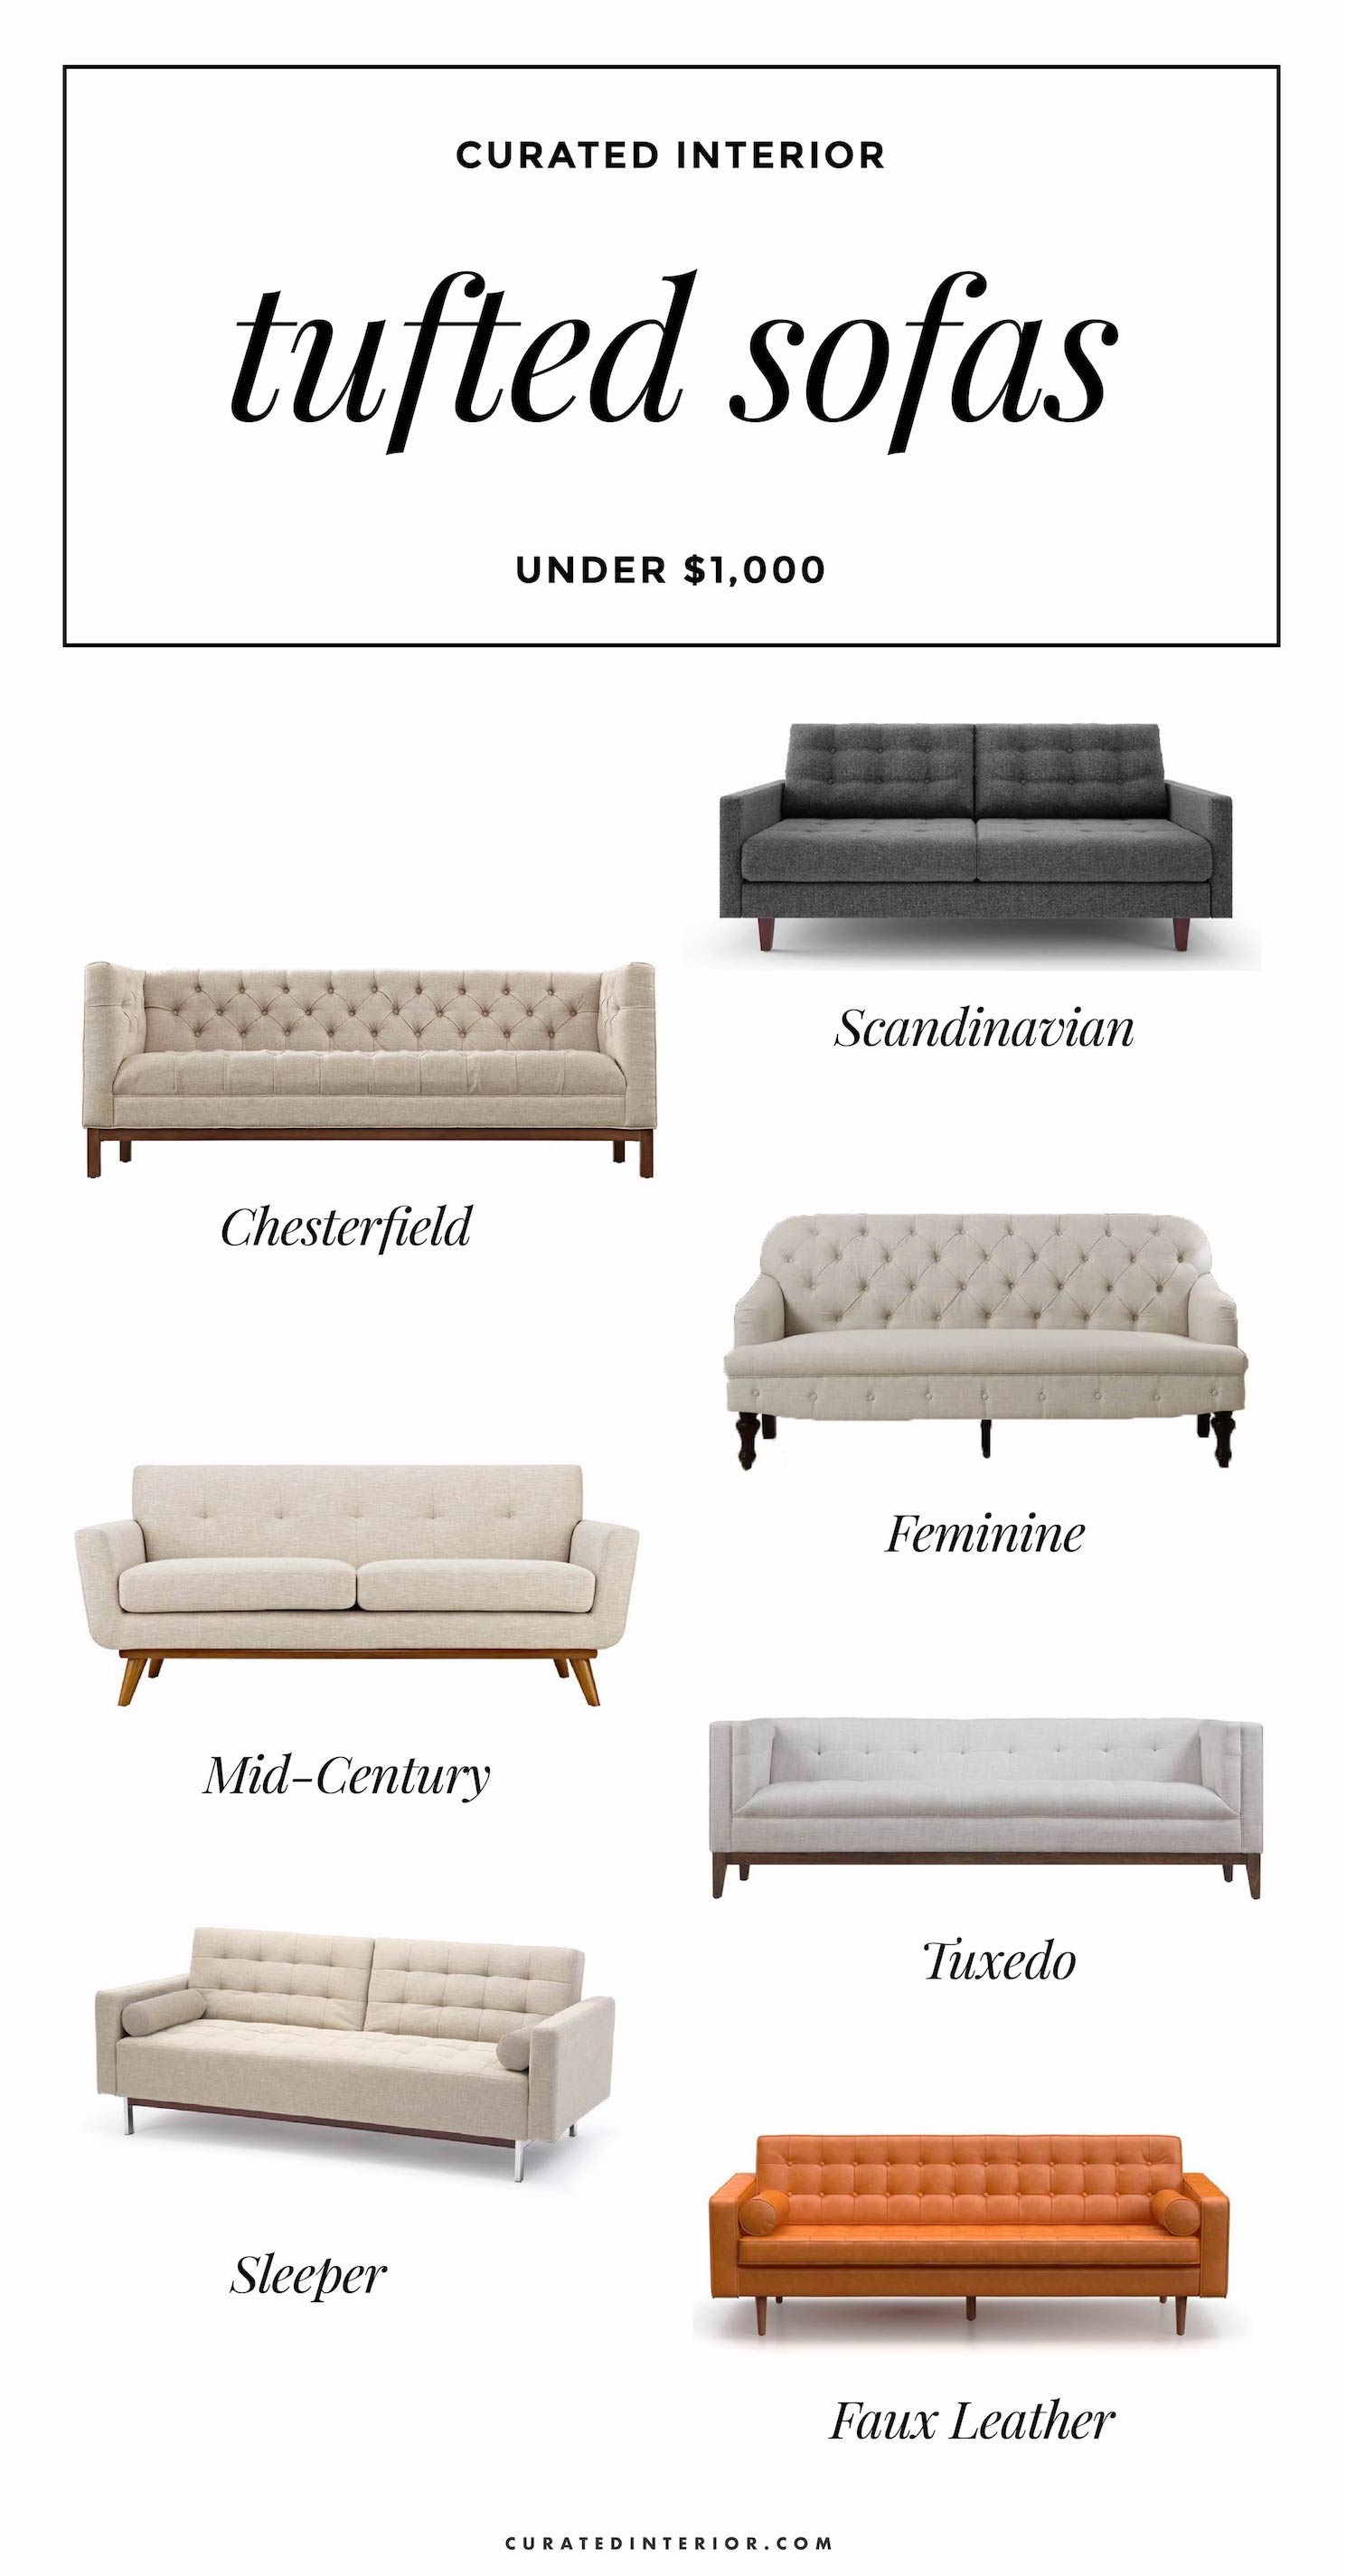 Tufted Sofas Under $1,000